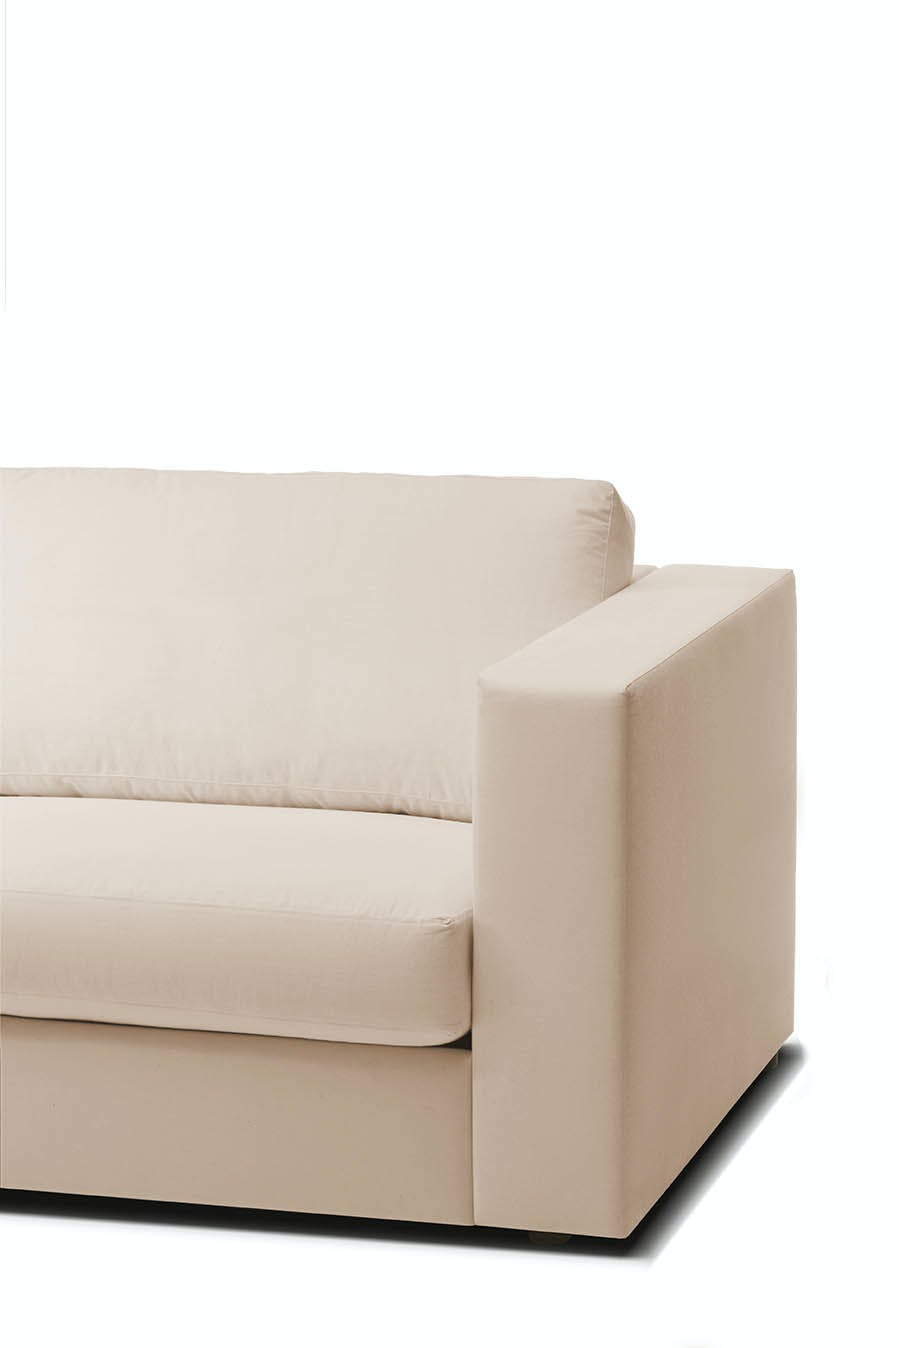 Jab Anstoetz Inspiration Sofa Arm 2 Haute Living